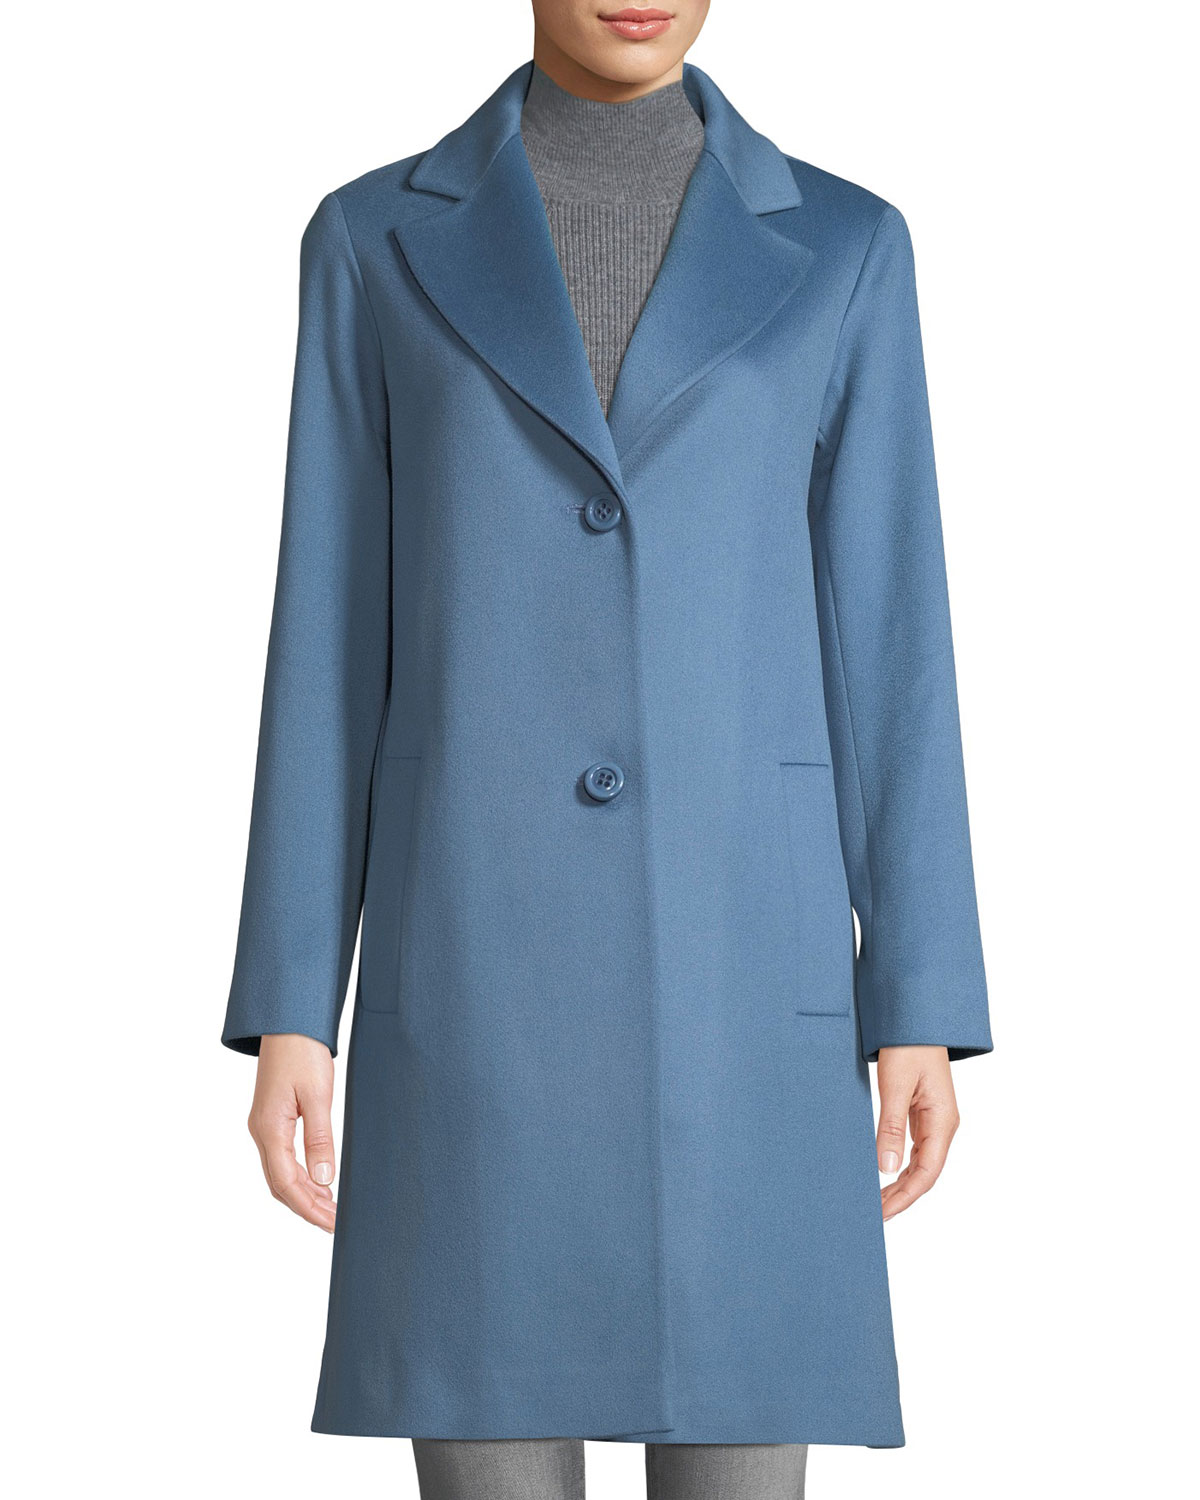 FLEURETTE Long Two-Button Wool Coat in Blue